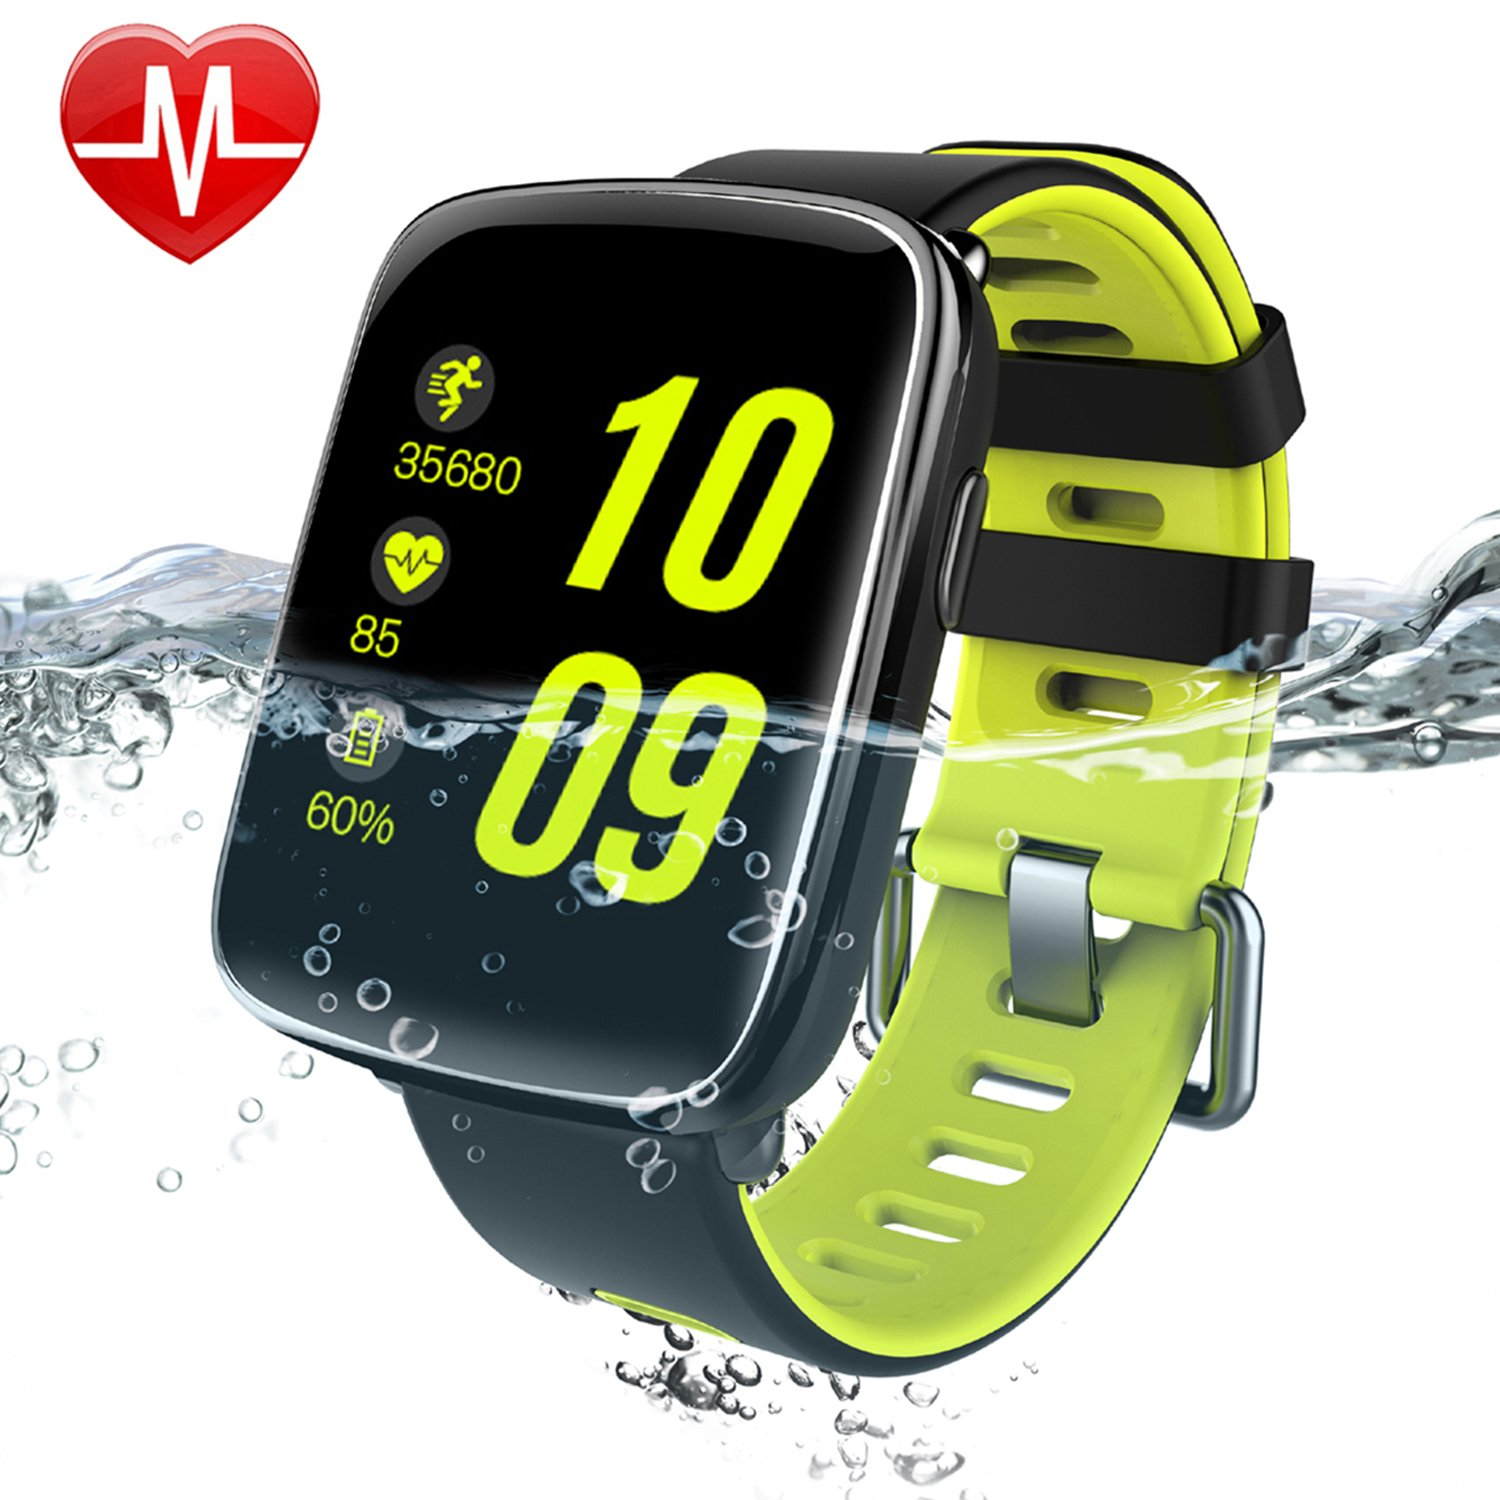 Smart Watch for iPhone & Android Phones,Willful SW018 Bluetooth Smartwatch Fitness Tracker Heart Rate Monitor Watch,Sleep Monitor Pedometer Watch for Men Women Green (IP68 Waterproof,3M Diving)